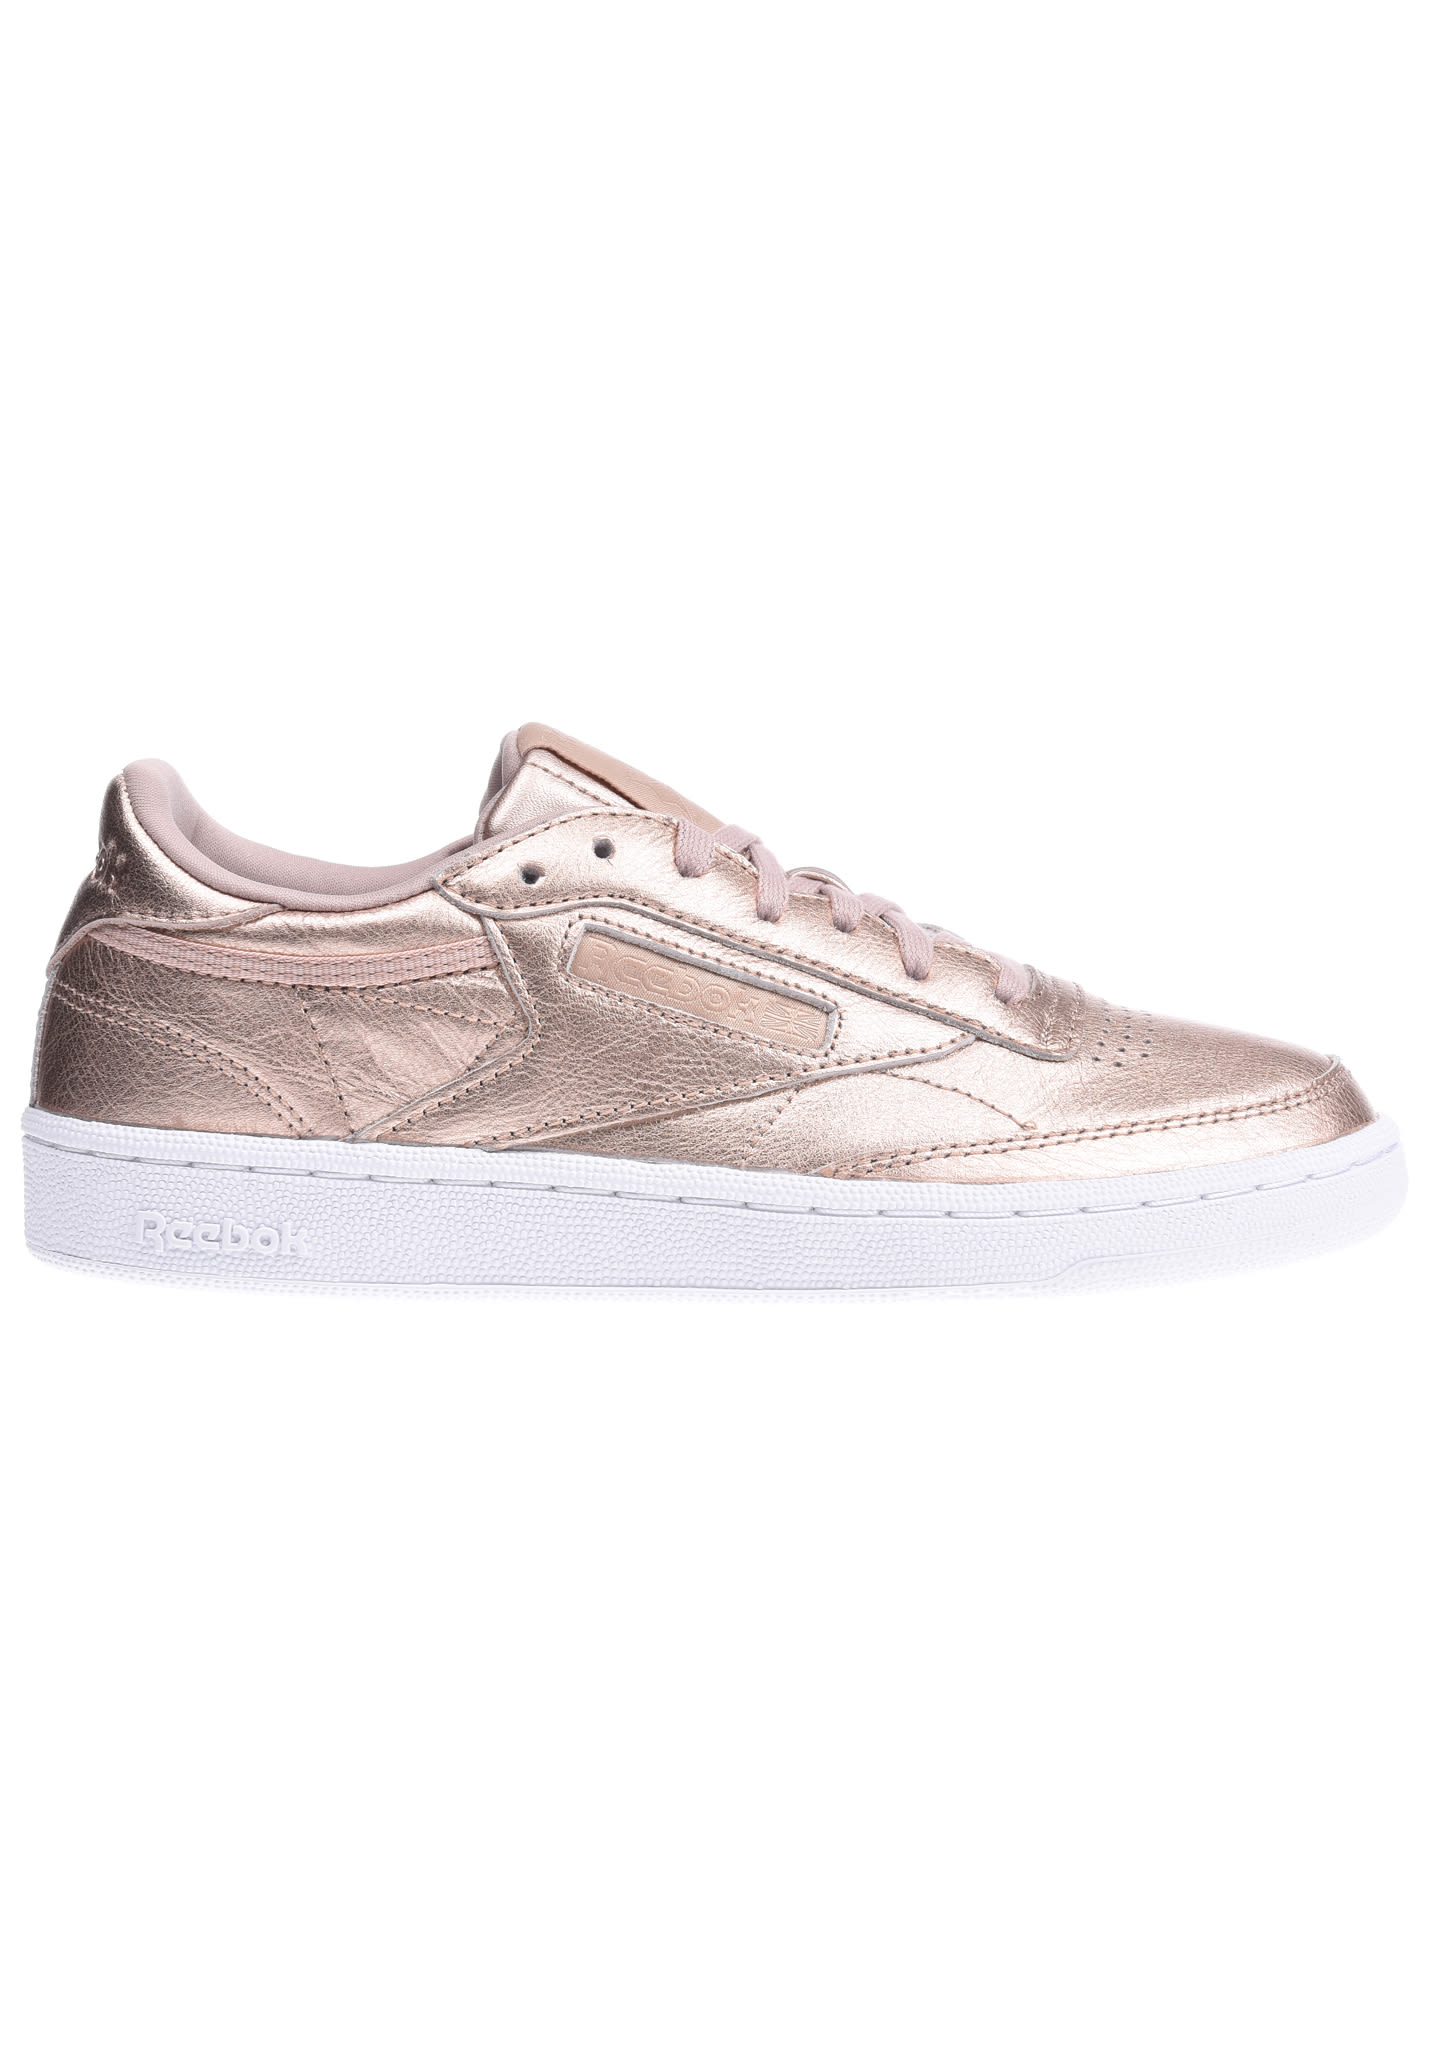 8671b7c685cb5 Reebok Club C 85 Melted Metal - Sneakers for Women - Pink - Planet Sports